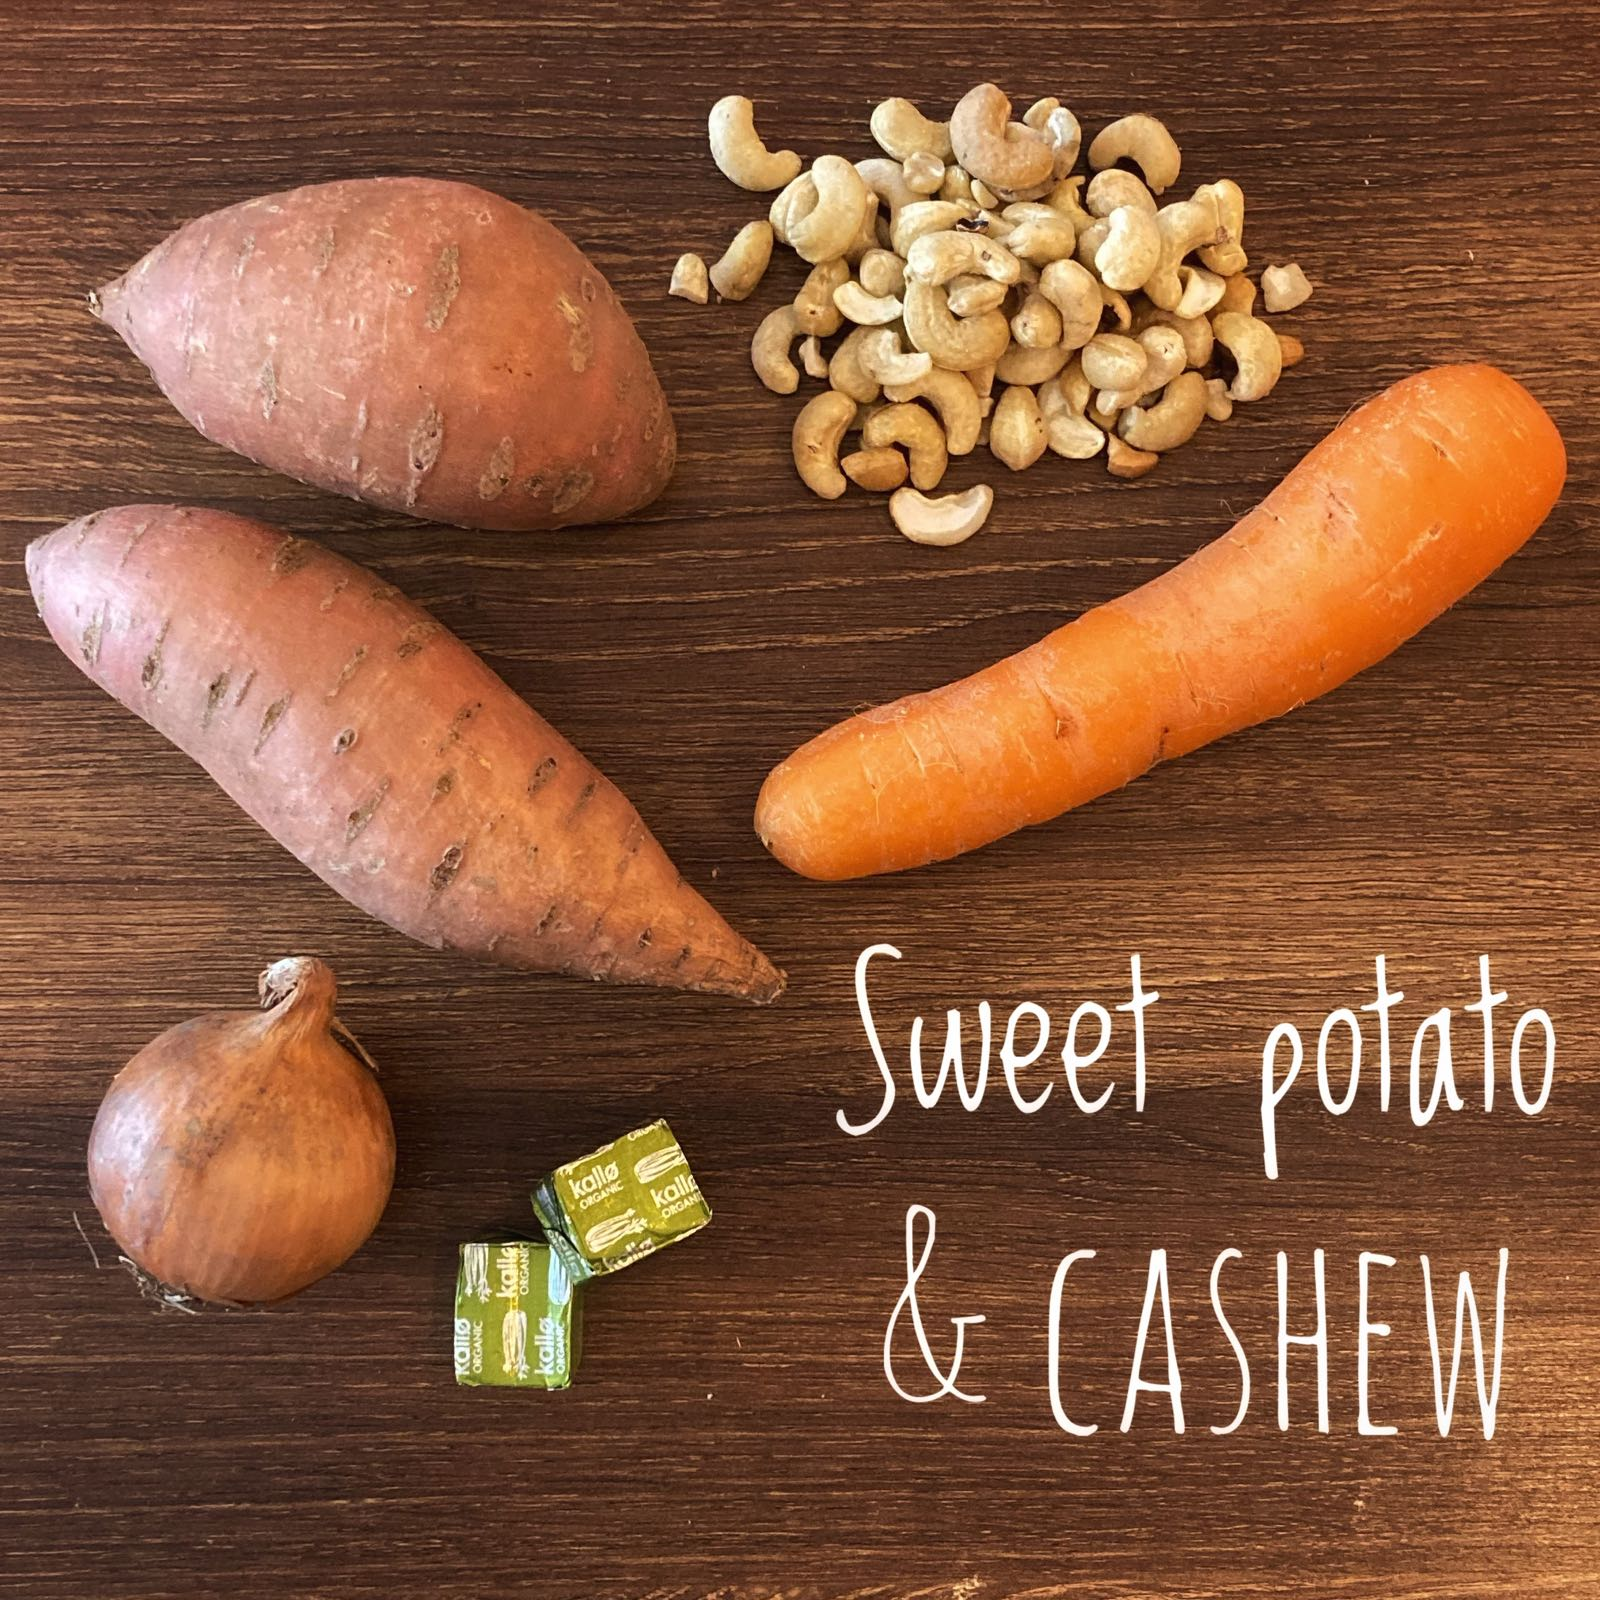 Sweet Potato and Cashew Soup Bag (vgn/gf)